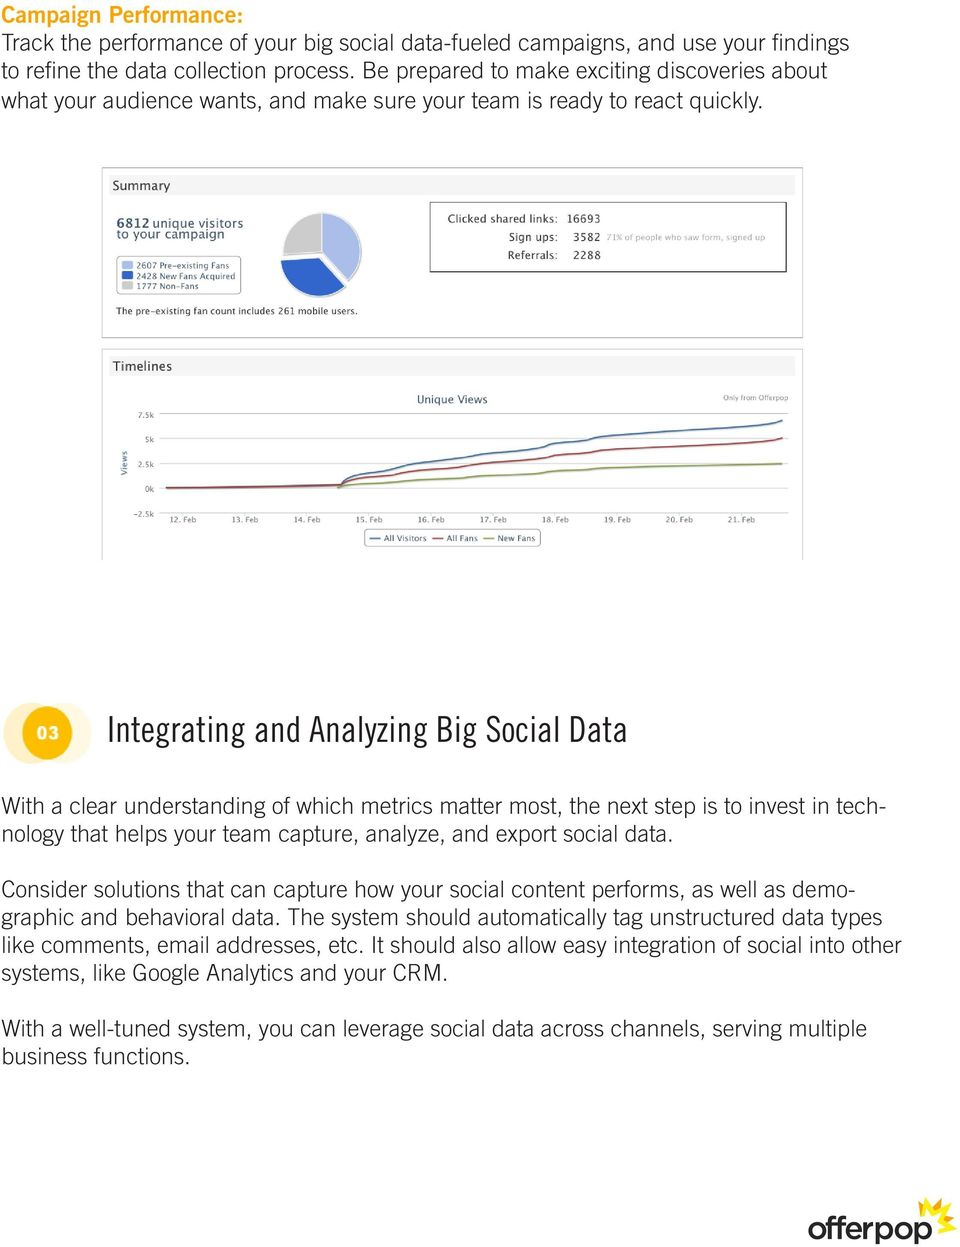 Integrating and Analyzing Big Social Data With a clear understanding of which metrics matter most, the next step is to invest in technology that helps your team capture, analyze, and export social